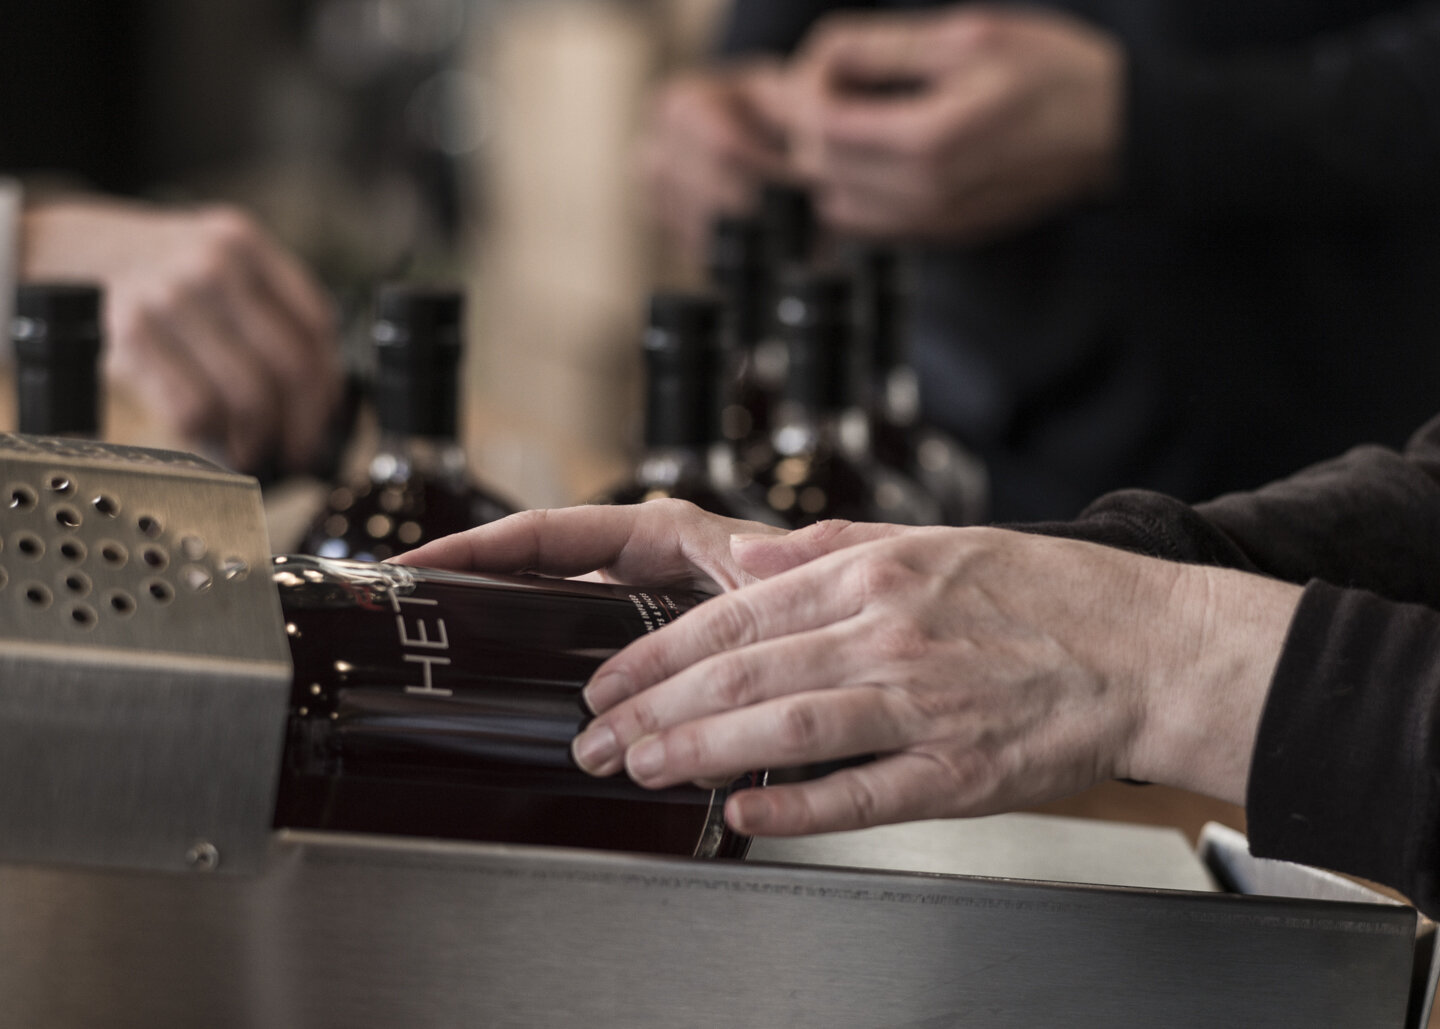 All hands on deck! Bottling day brings three generations together to make our tradition available to others.